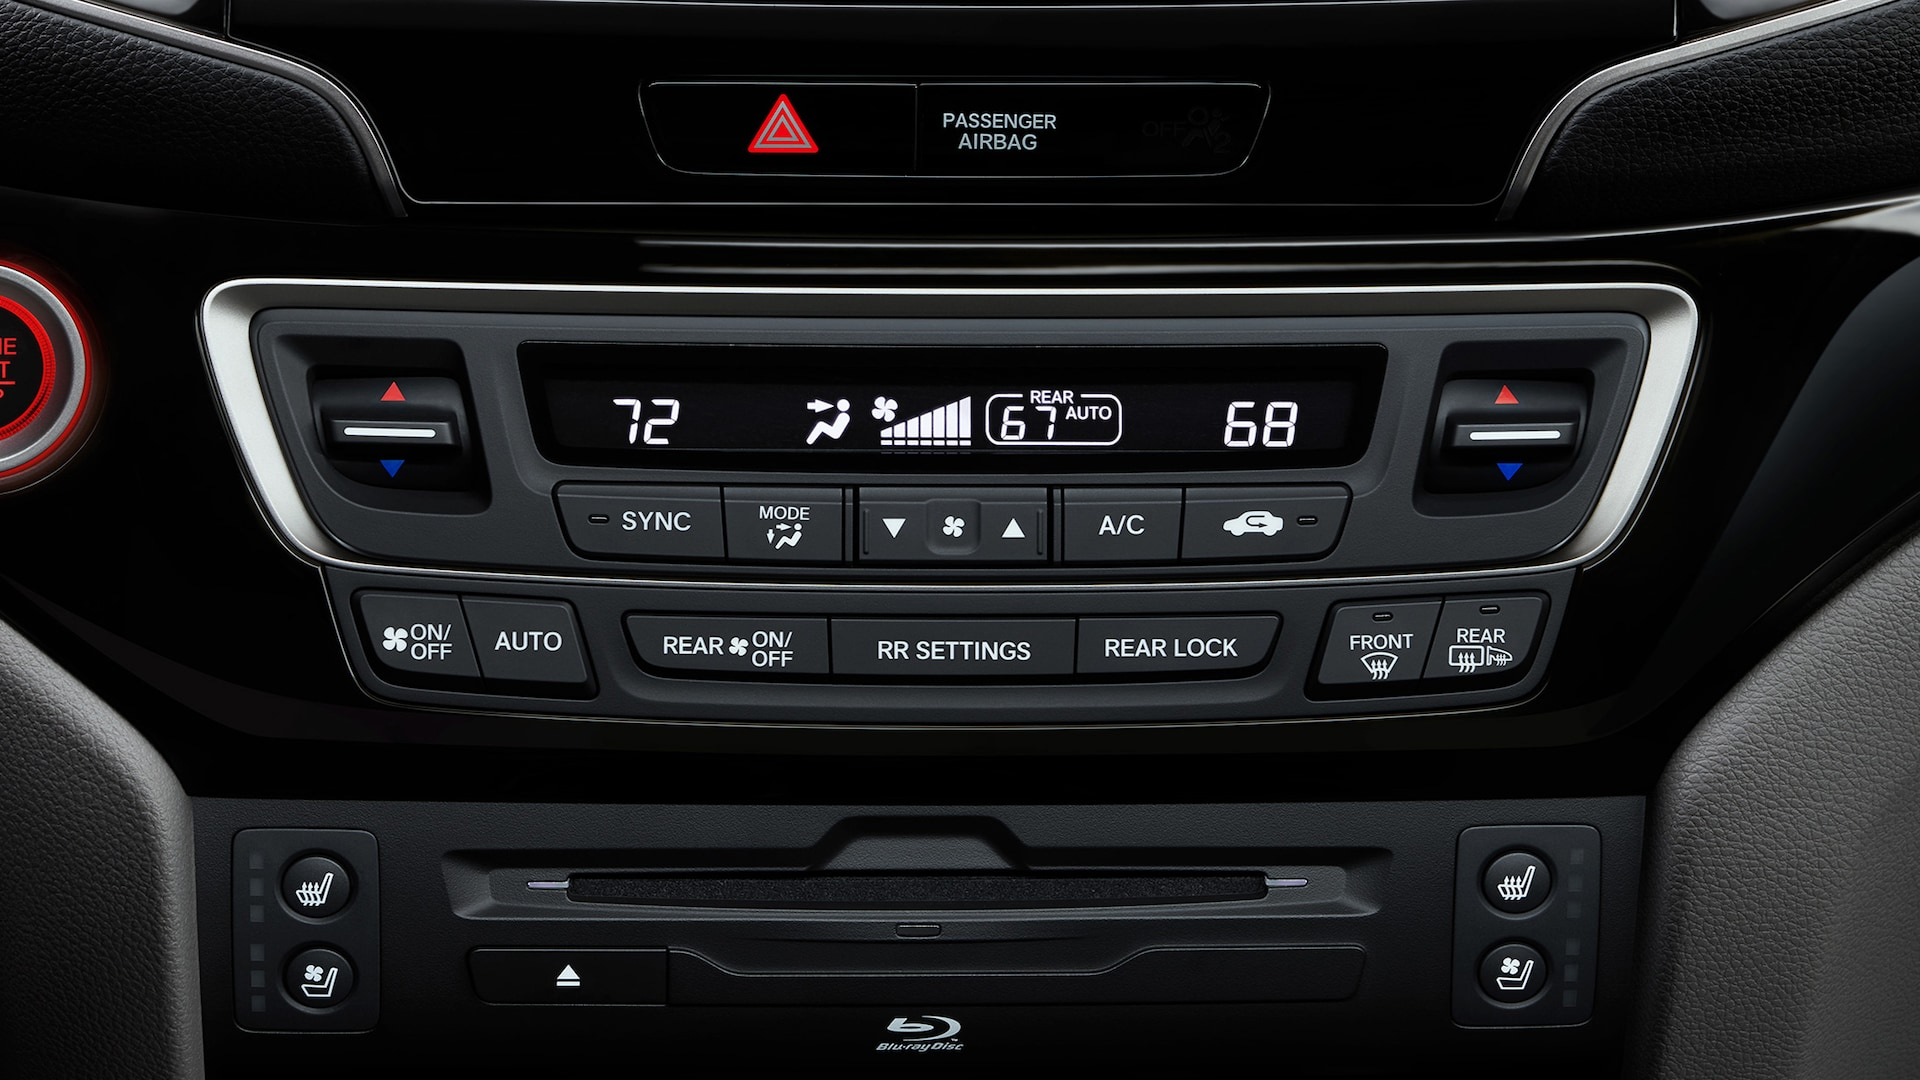 Climate control panel detail in 2020 Honda Pilot Elite.